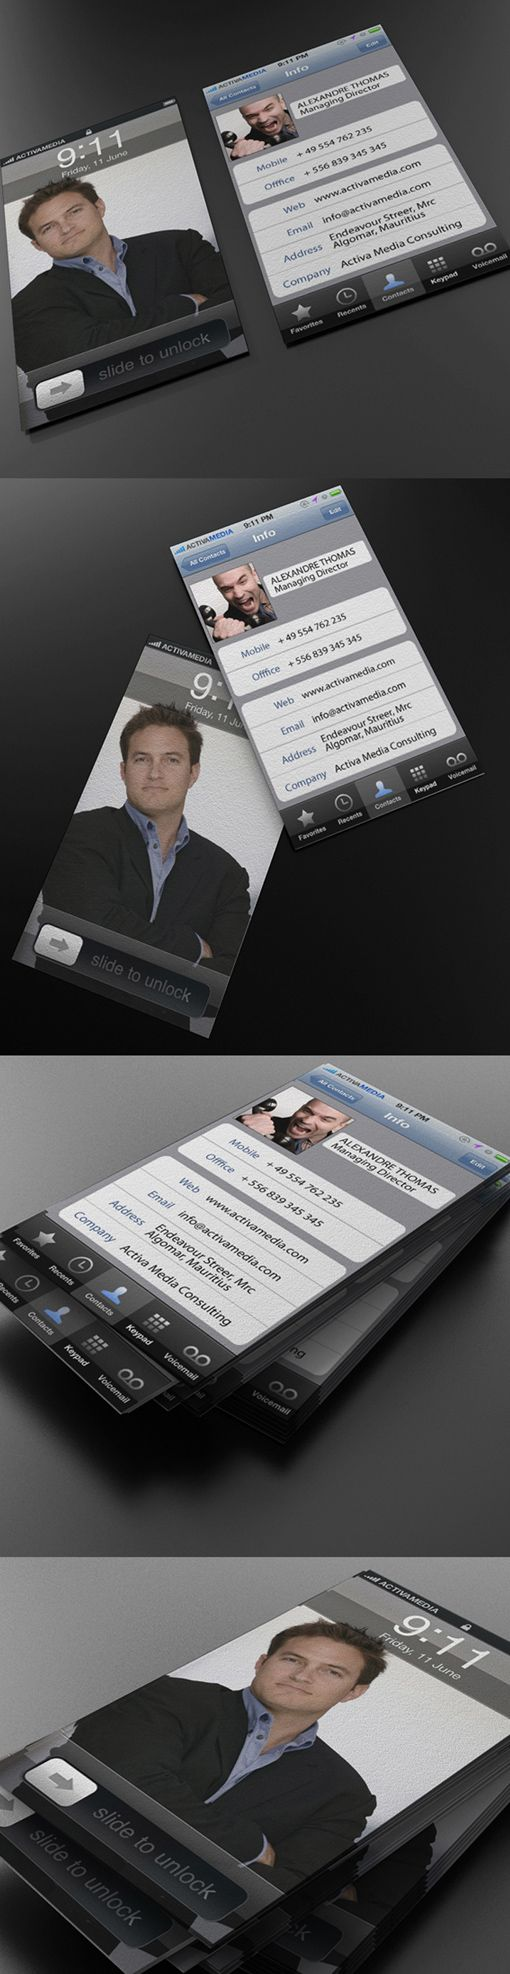 134 Best Business Card Ideas That Wow Images On Pinterest